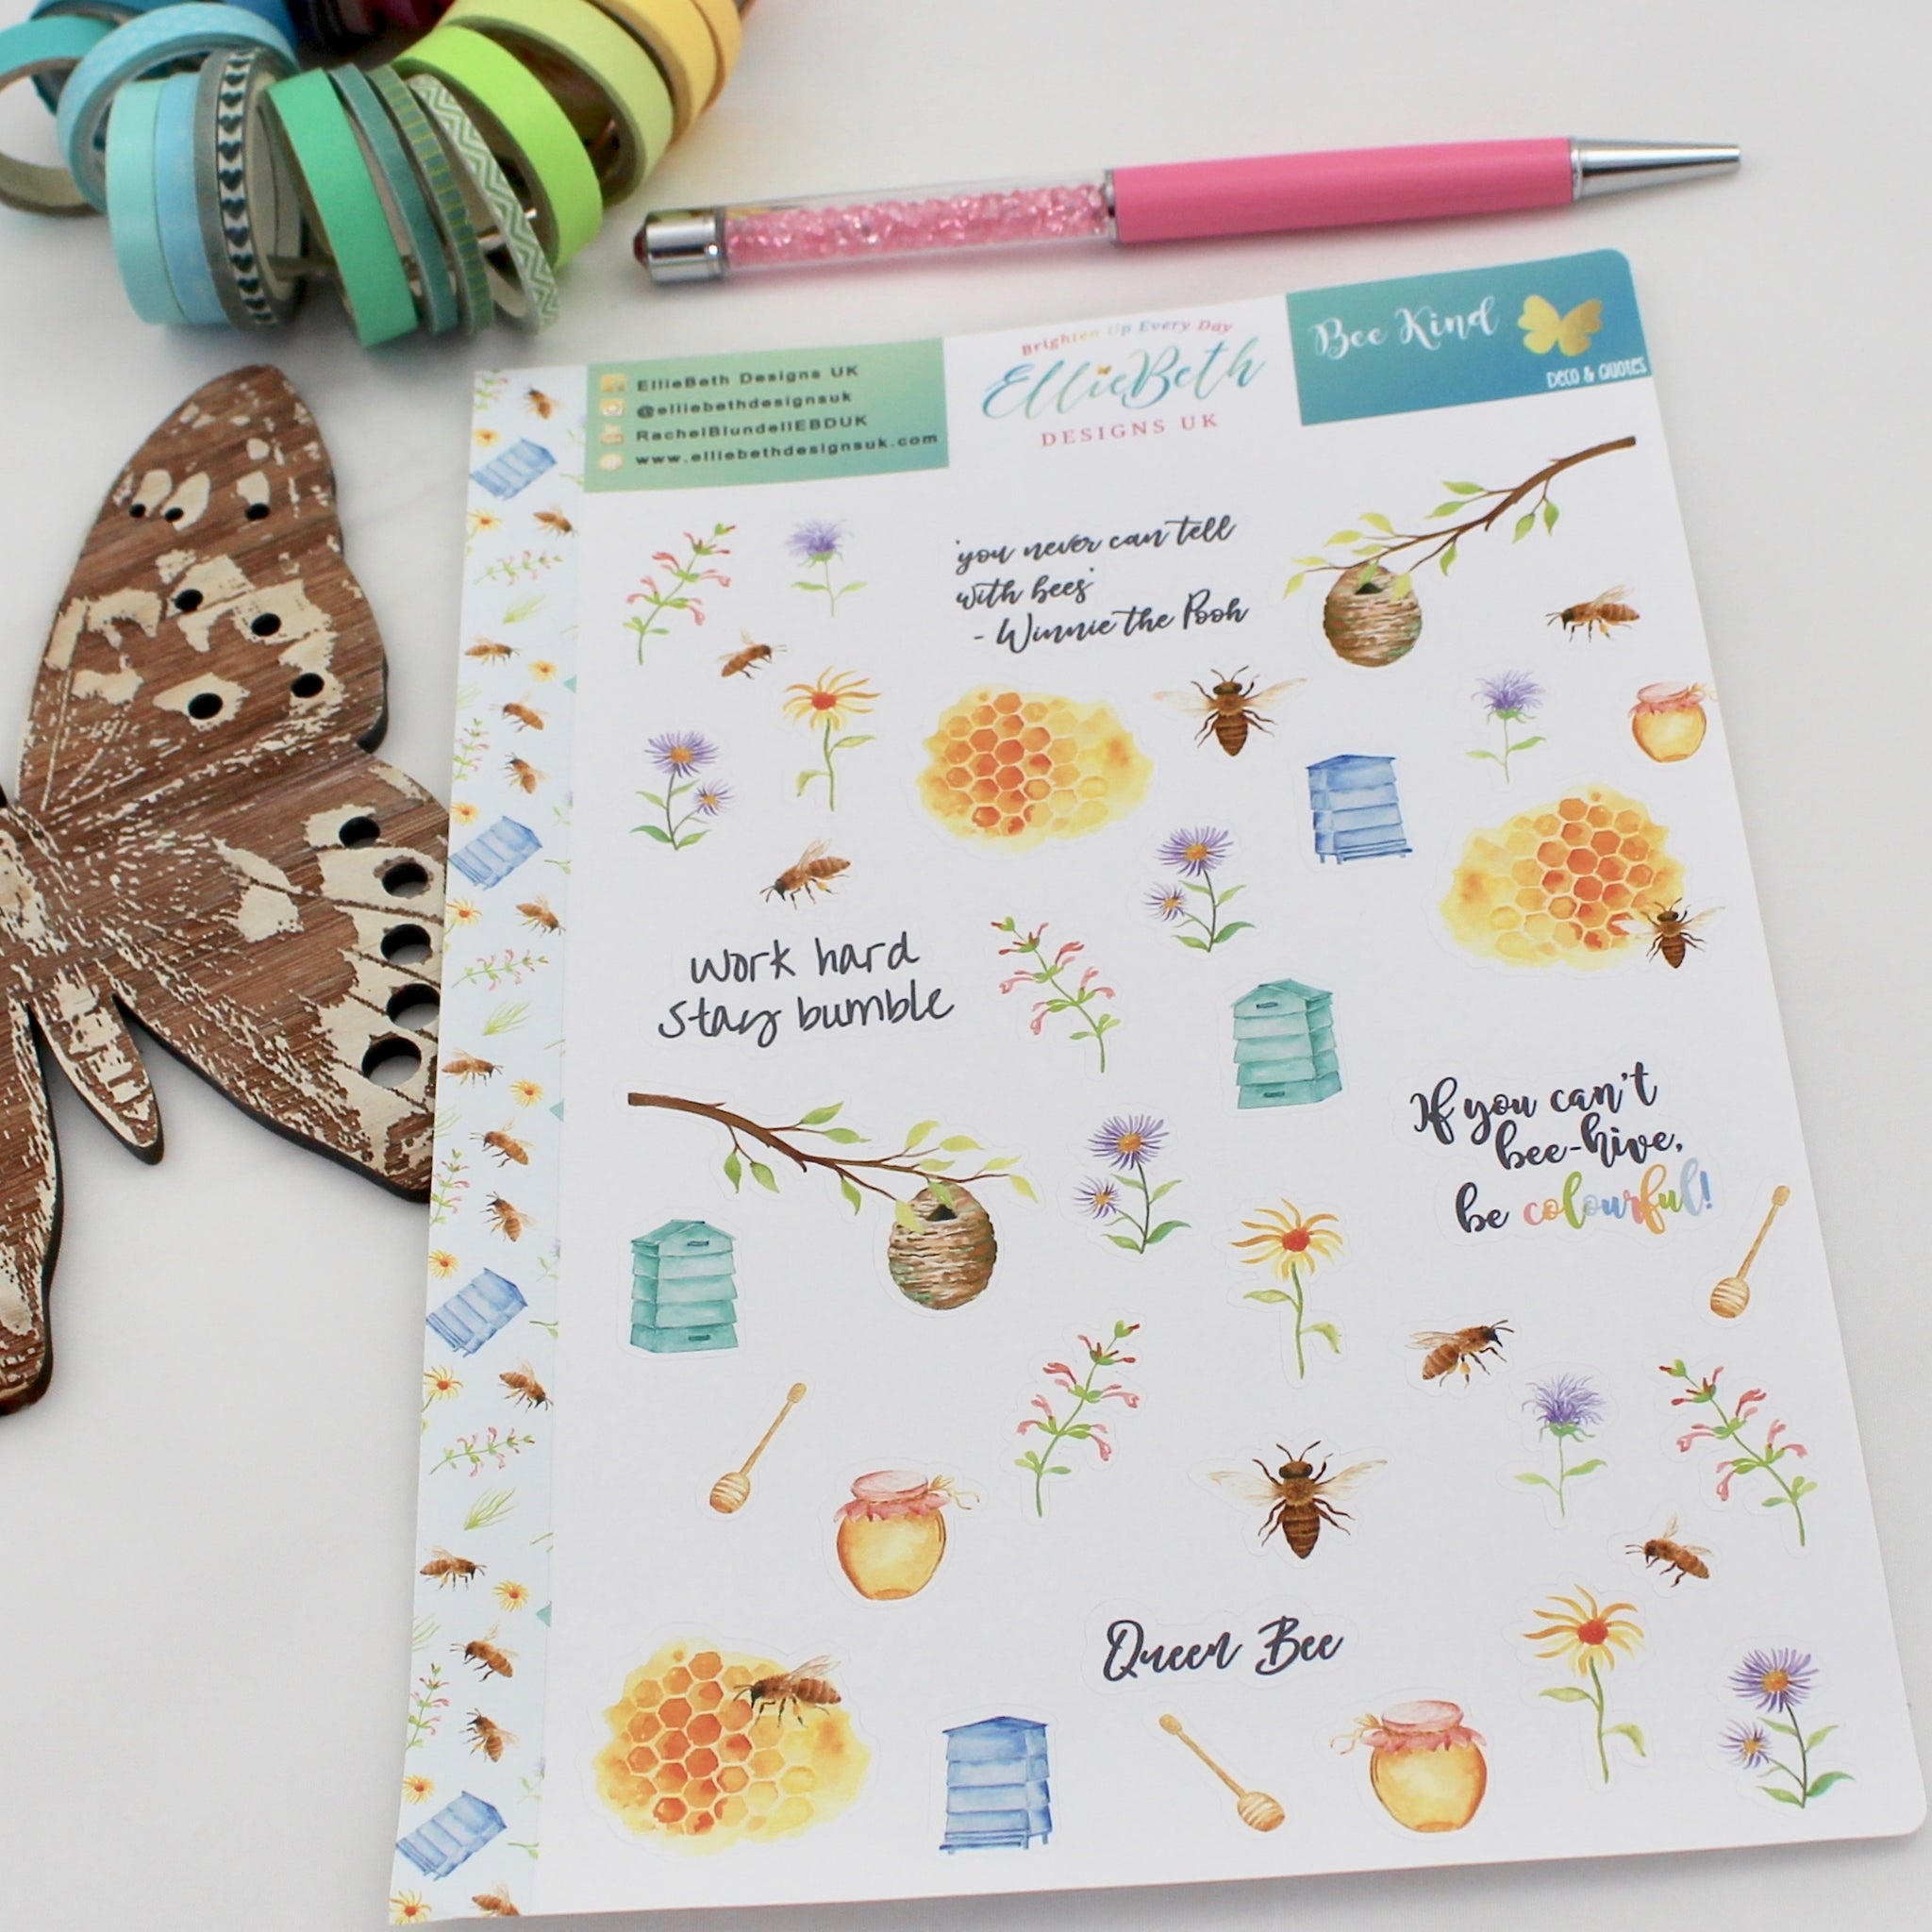 'Bee Kind' - Decorative Sheet -  A5 binder ready planner stickers